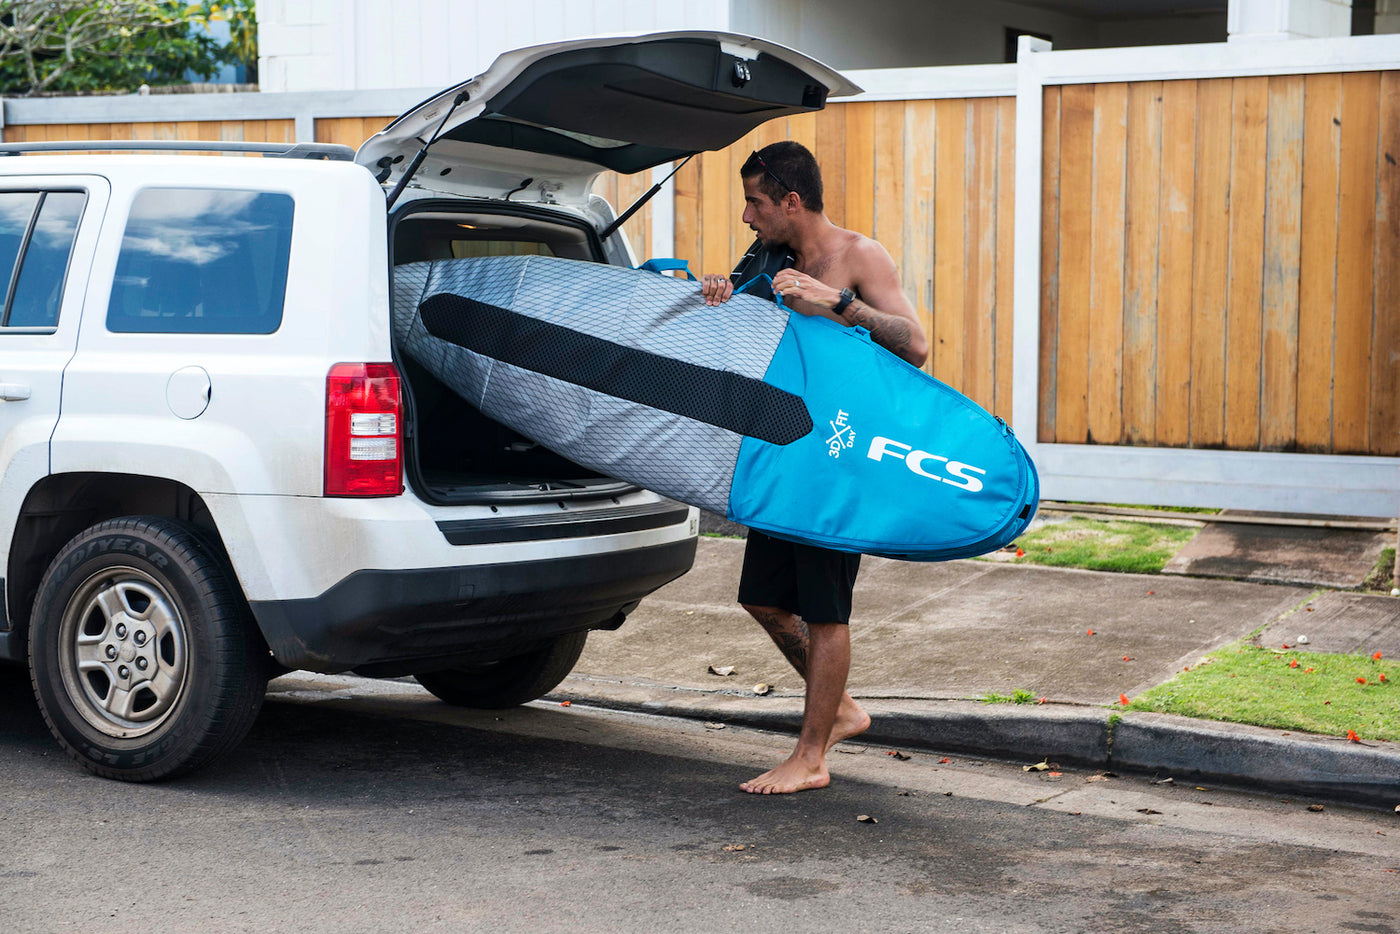 Man carrying surfboard in a FCS Surboard bag cover.